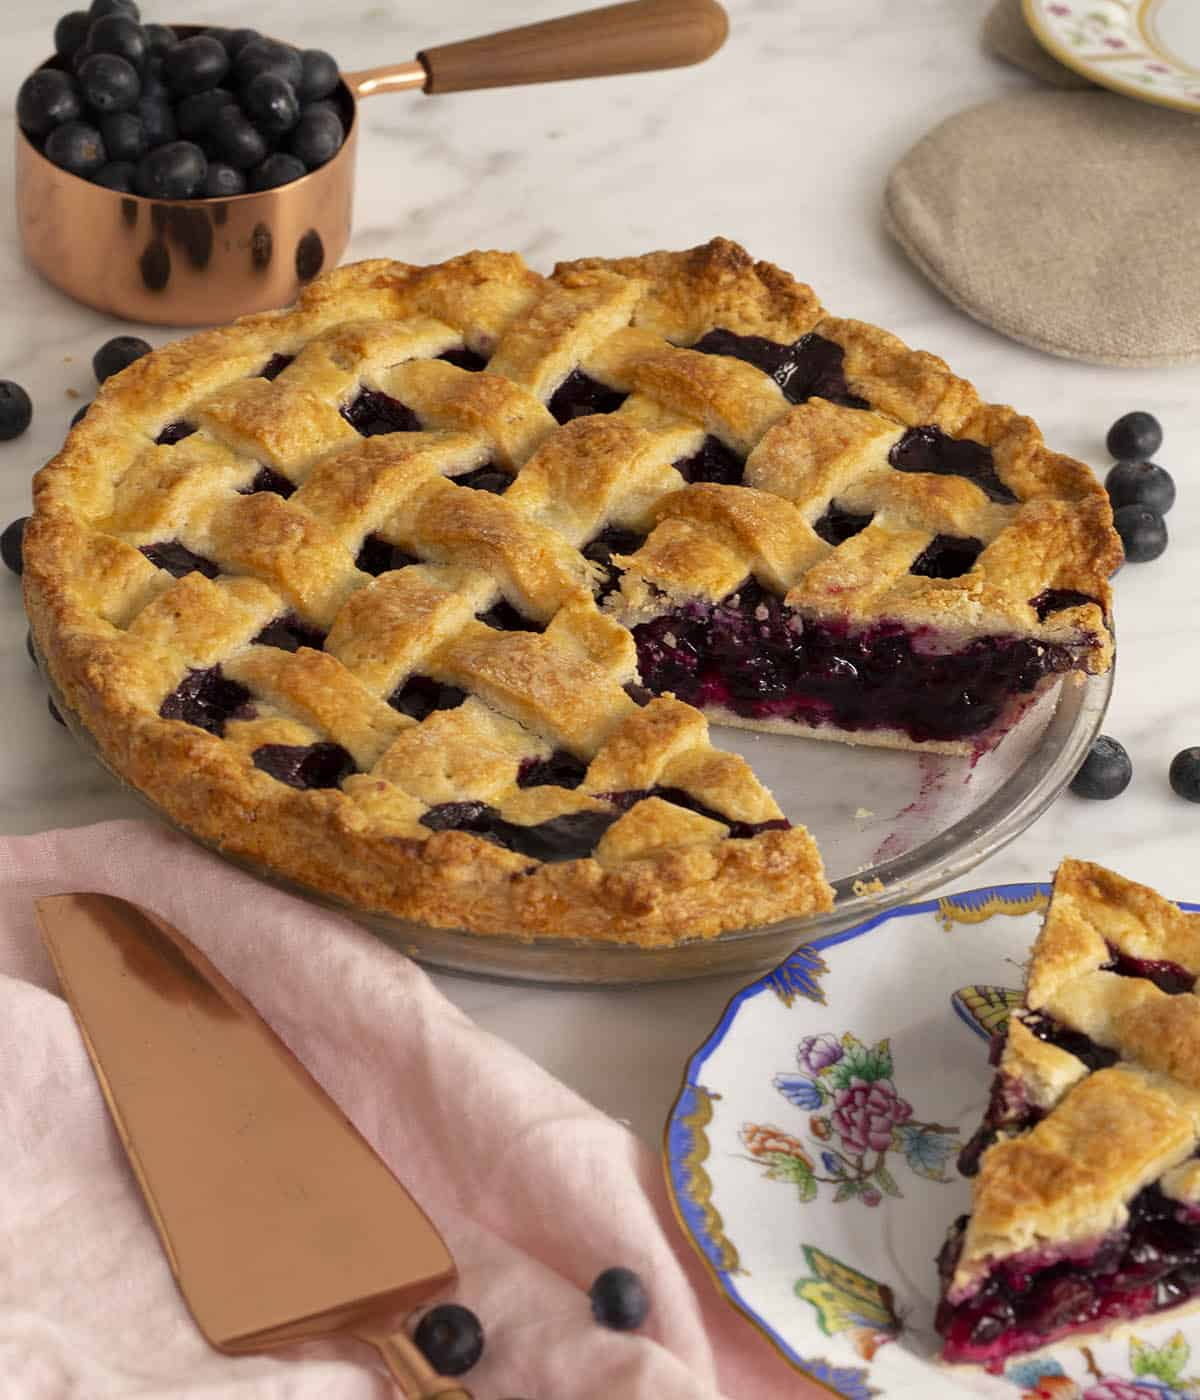 A homemade blueberry pie on a marble table.